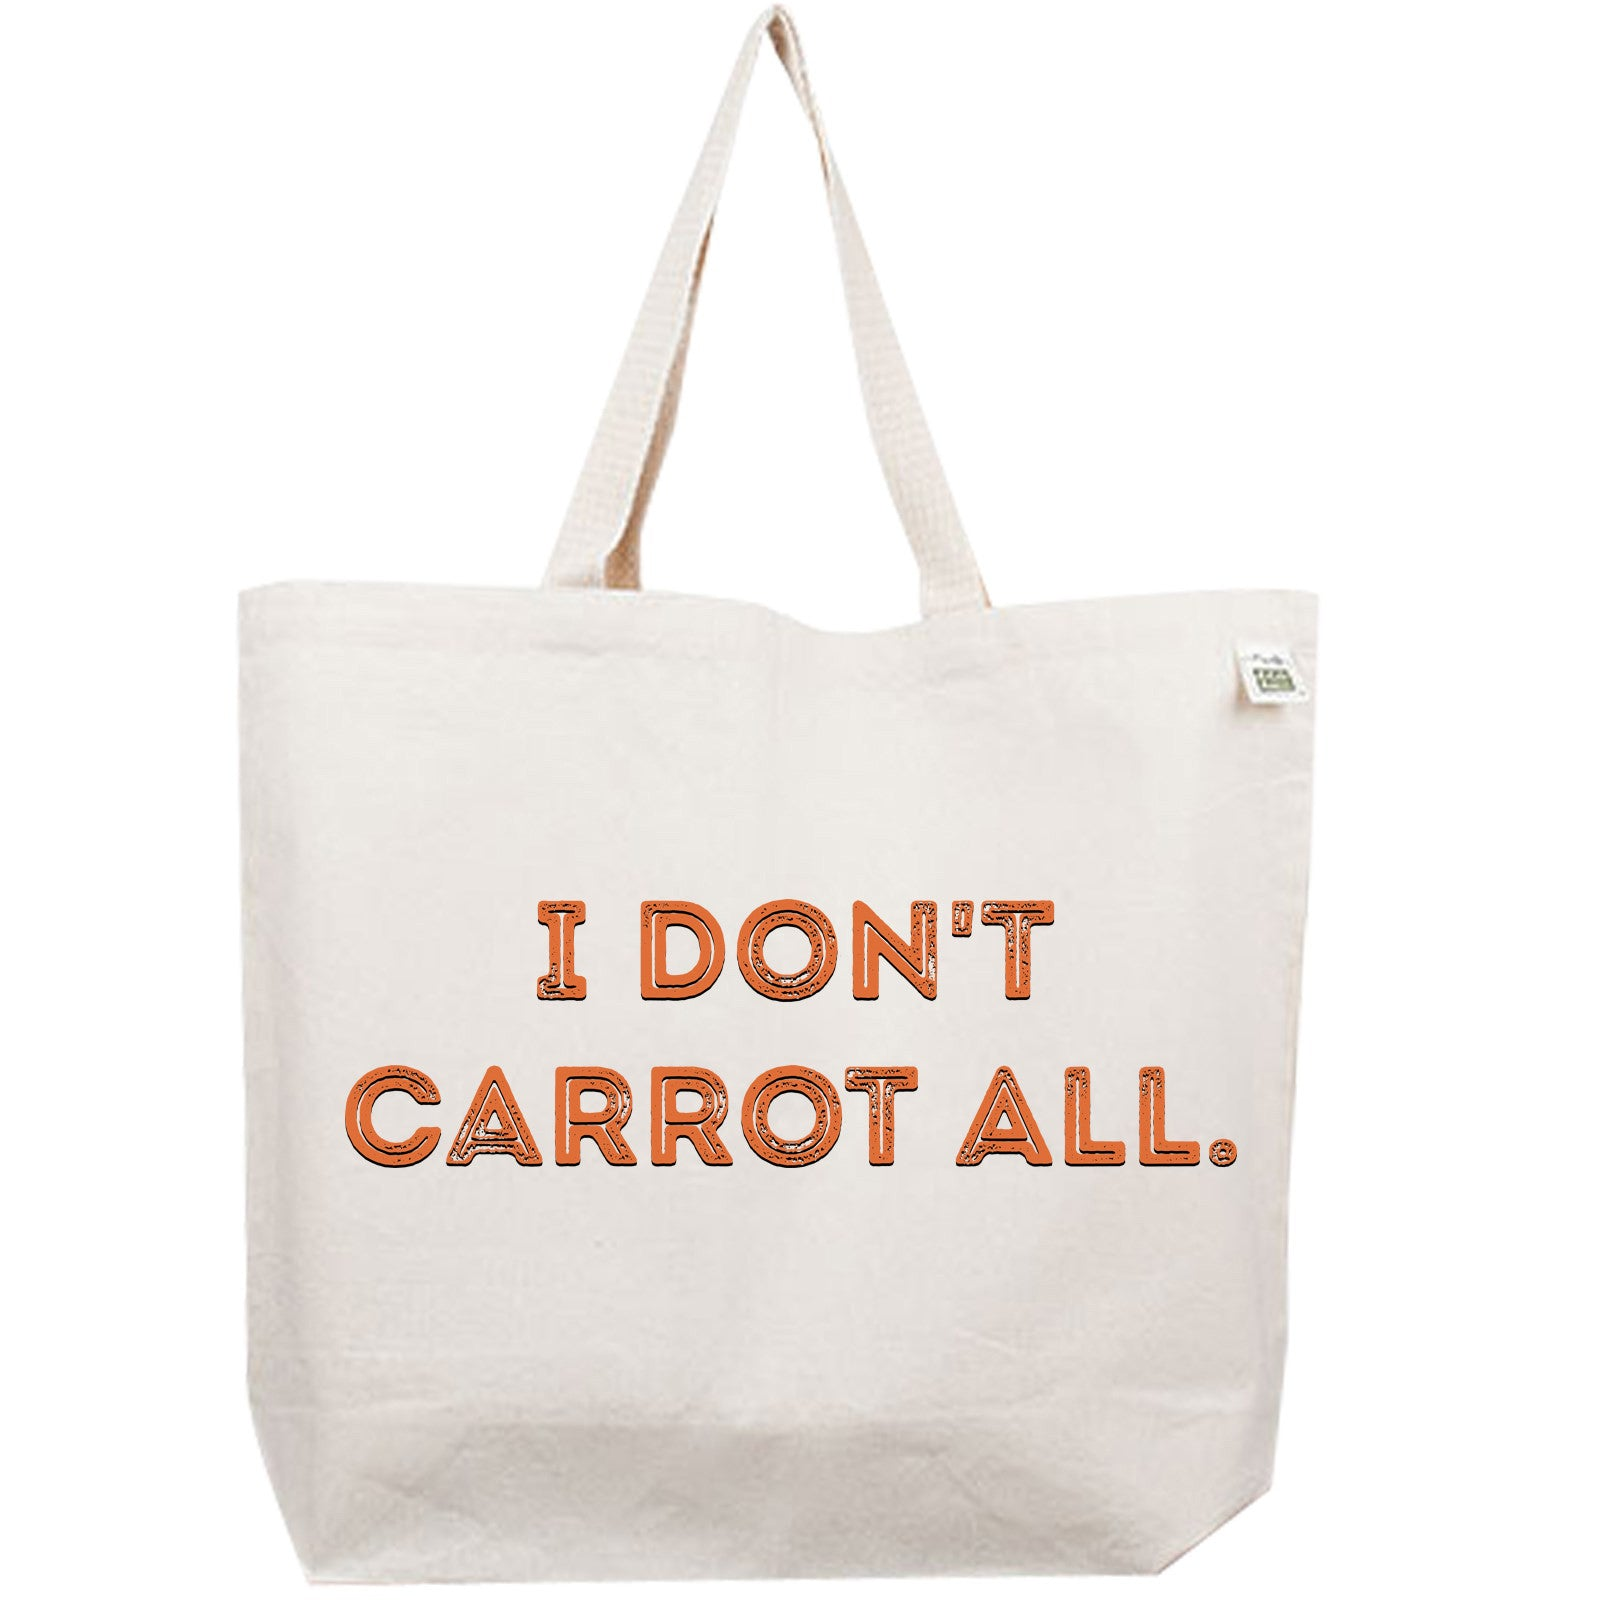 SPT - Don't Carrot All